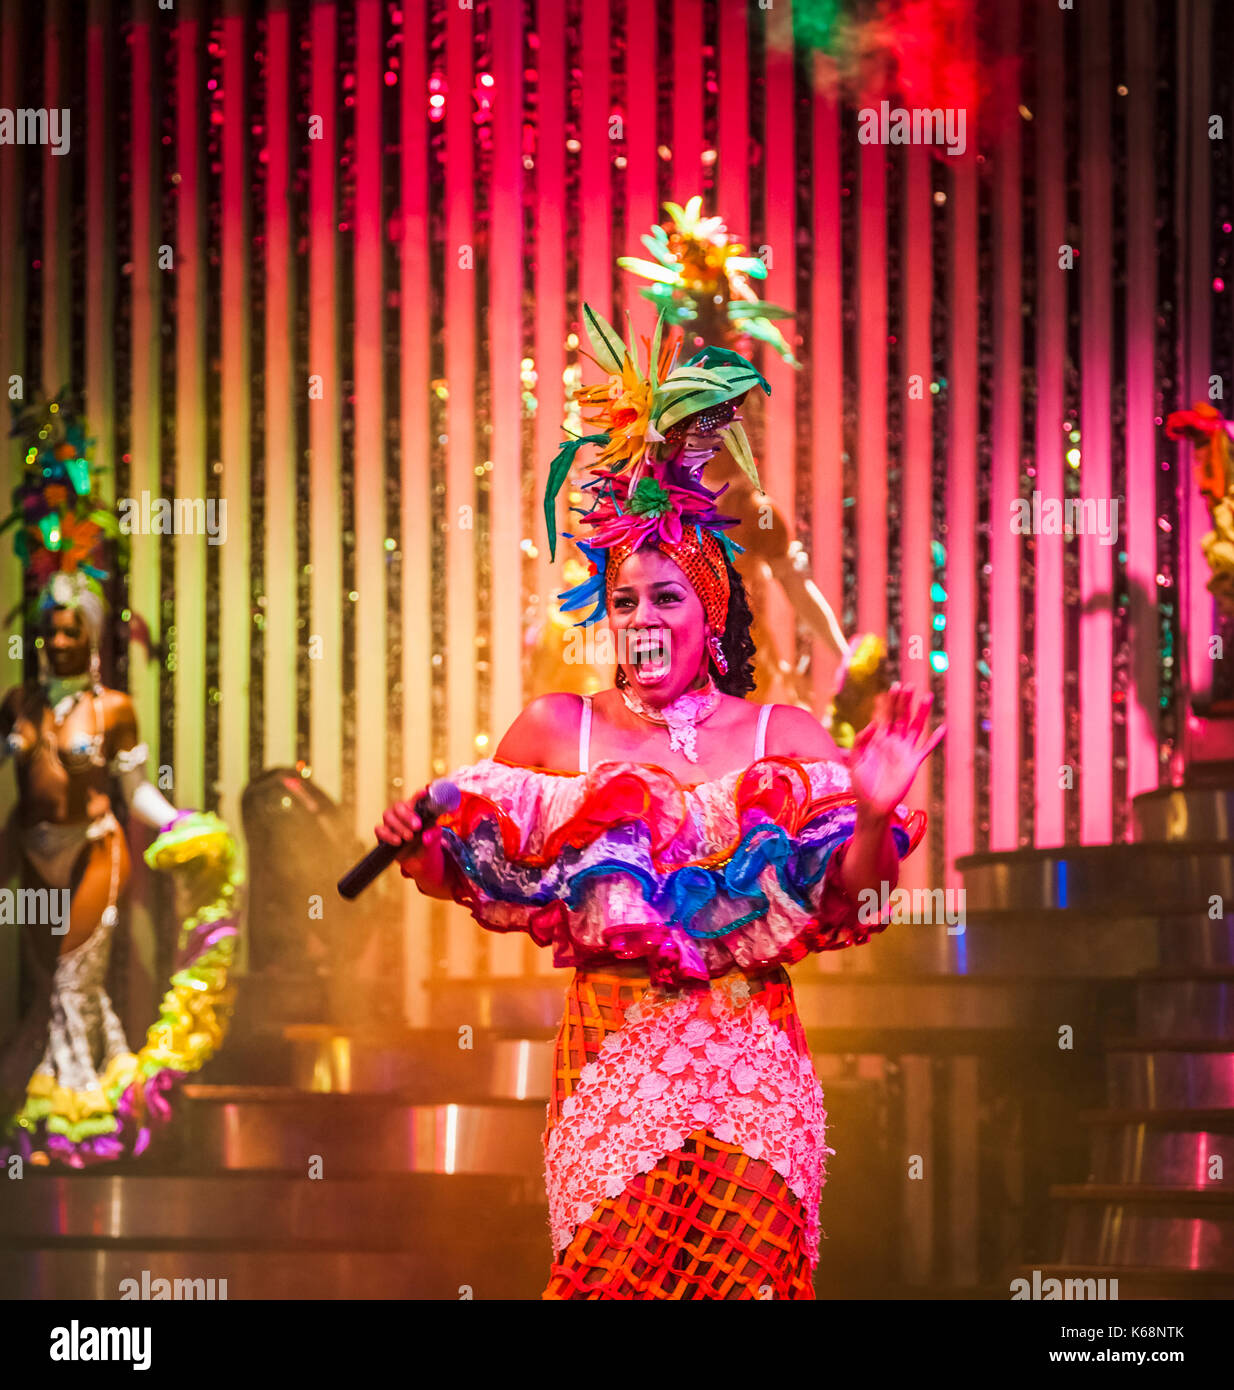 Exuberant singer and exotic dancer performing live on stage in colourful costumes in a cabaret show for tourists in a nightclub in Havana, Cuba - Stock Image